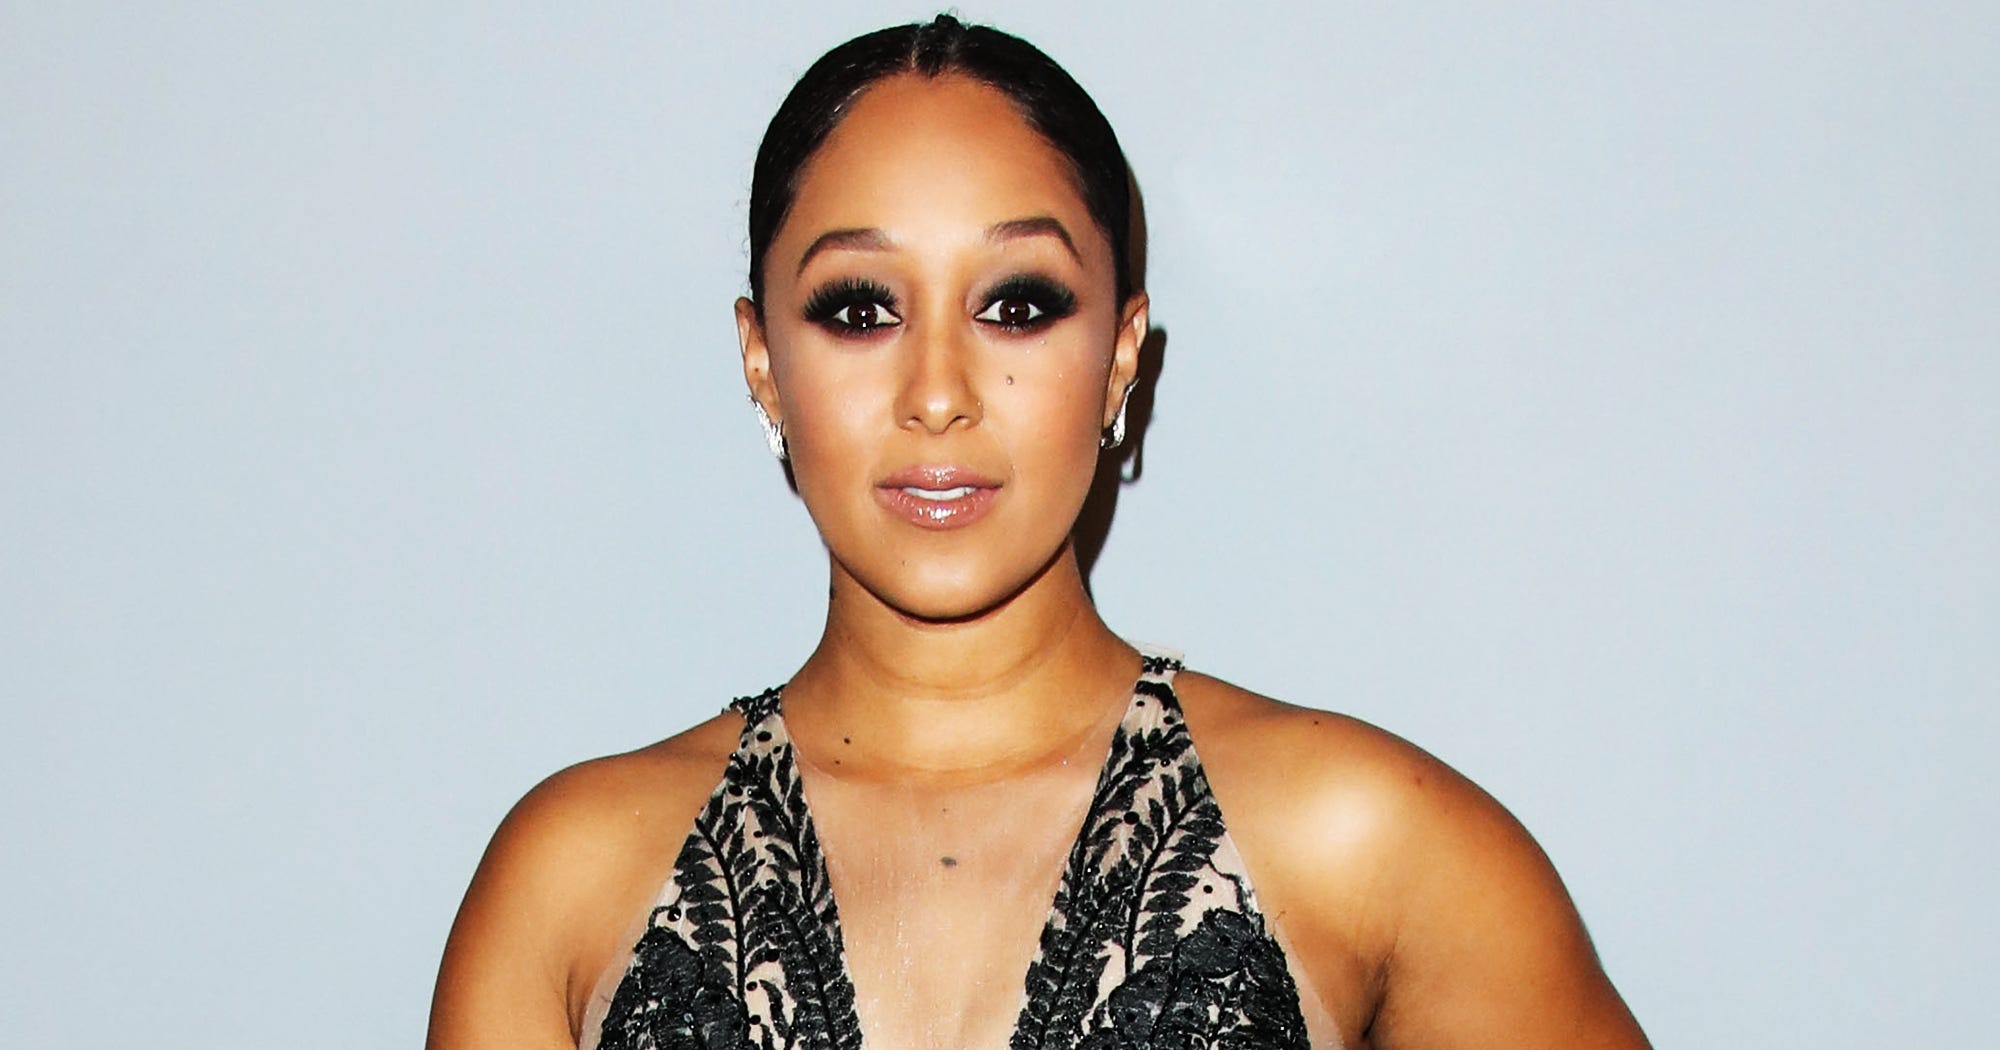 Tamera Mowry's Niece Among Those Still Missing In Thousand Oaks Shooting